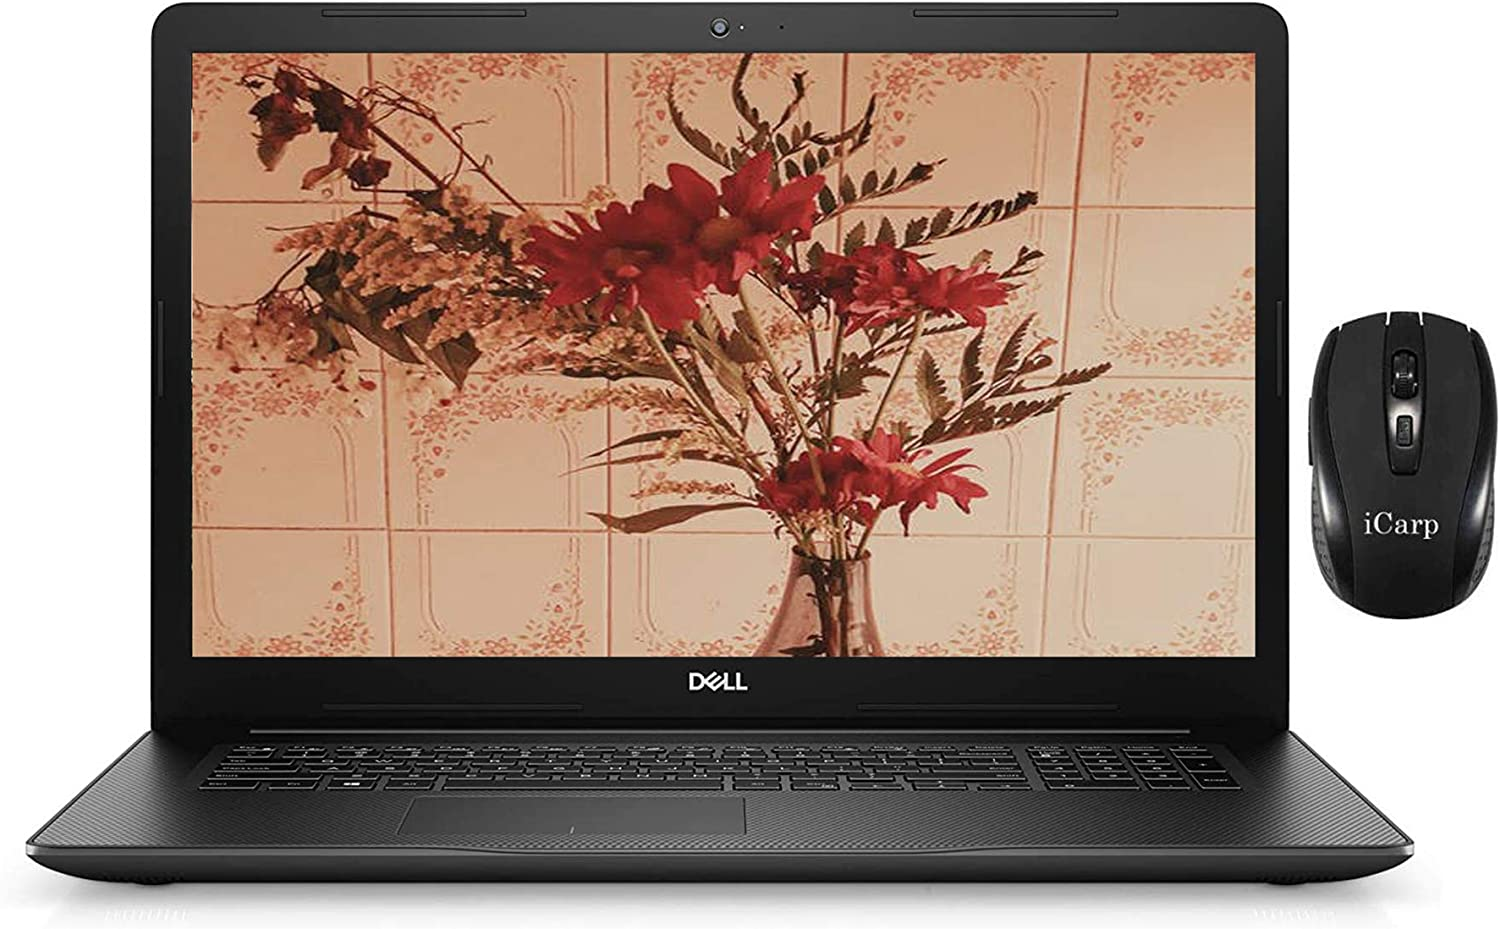 "2020 Flagship Dell Inspiron 17 3000 3793 Laptop Computer 17.3"" FHD Display 10th Gen Intel Quad-Core i5-1035G1 (Beats i7-8550U) 8GB DDR4 256GB SSD Webcam WiFi DVD Win 10 Pro + iCarp Wireless Mouse"